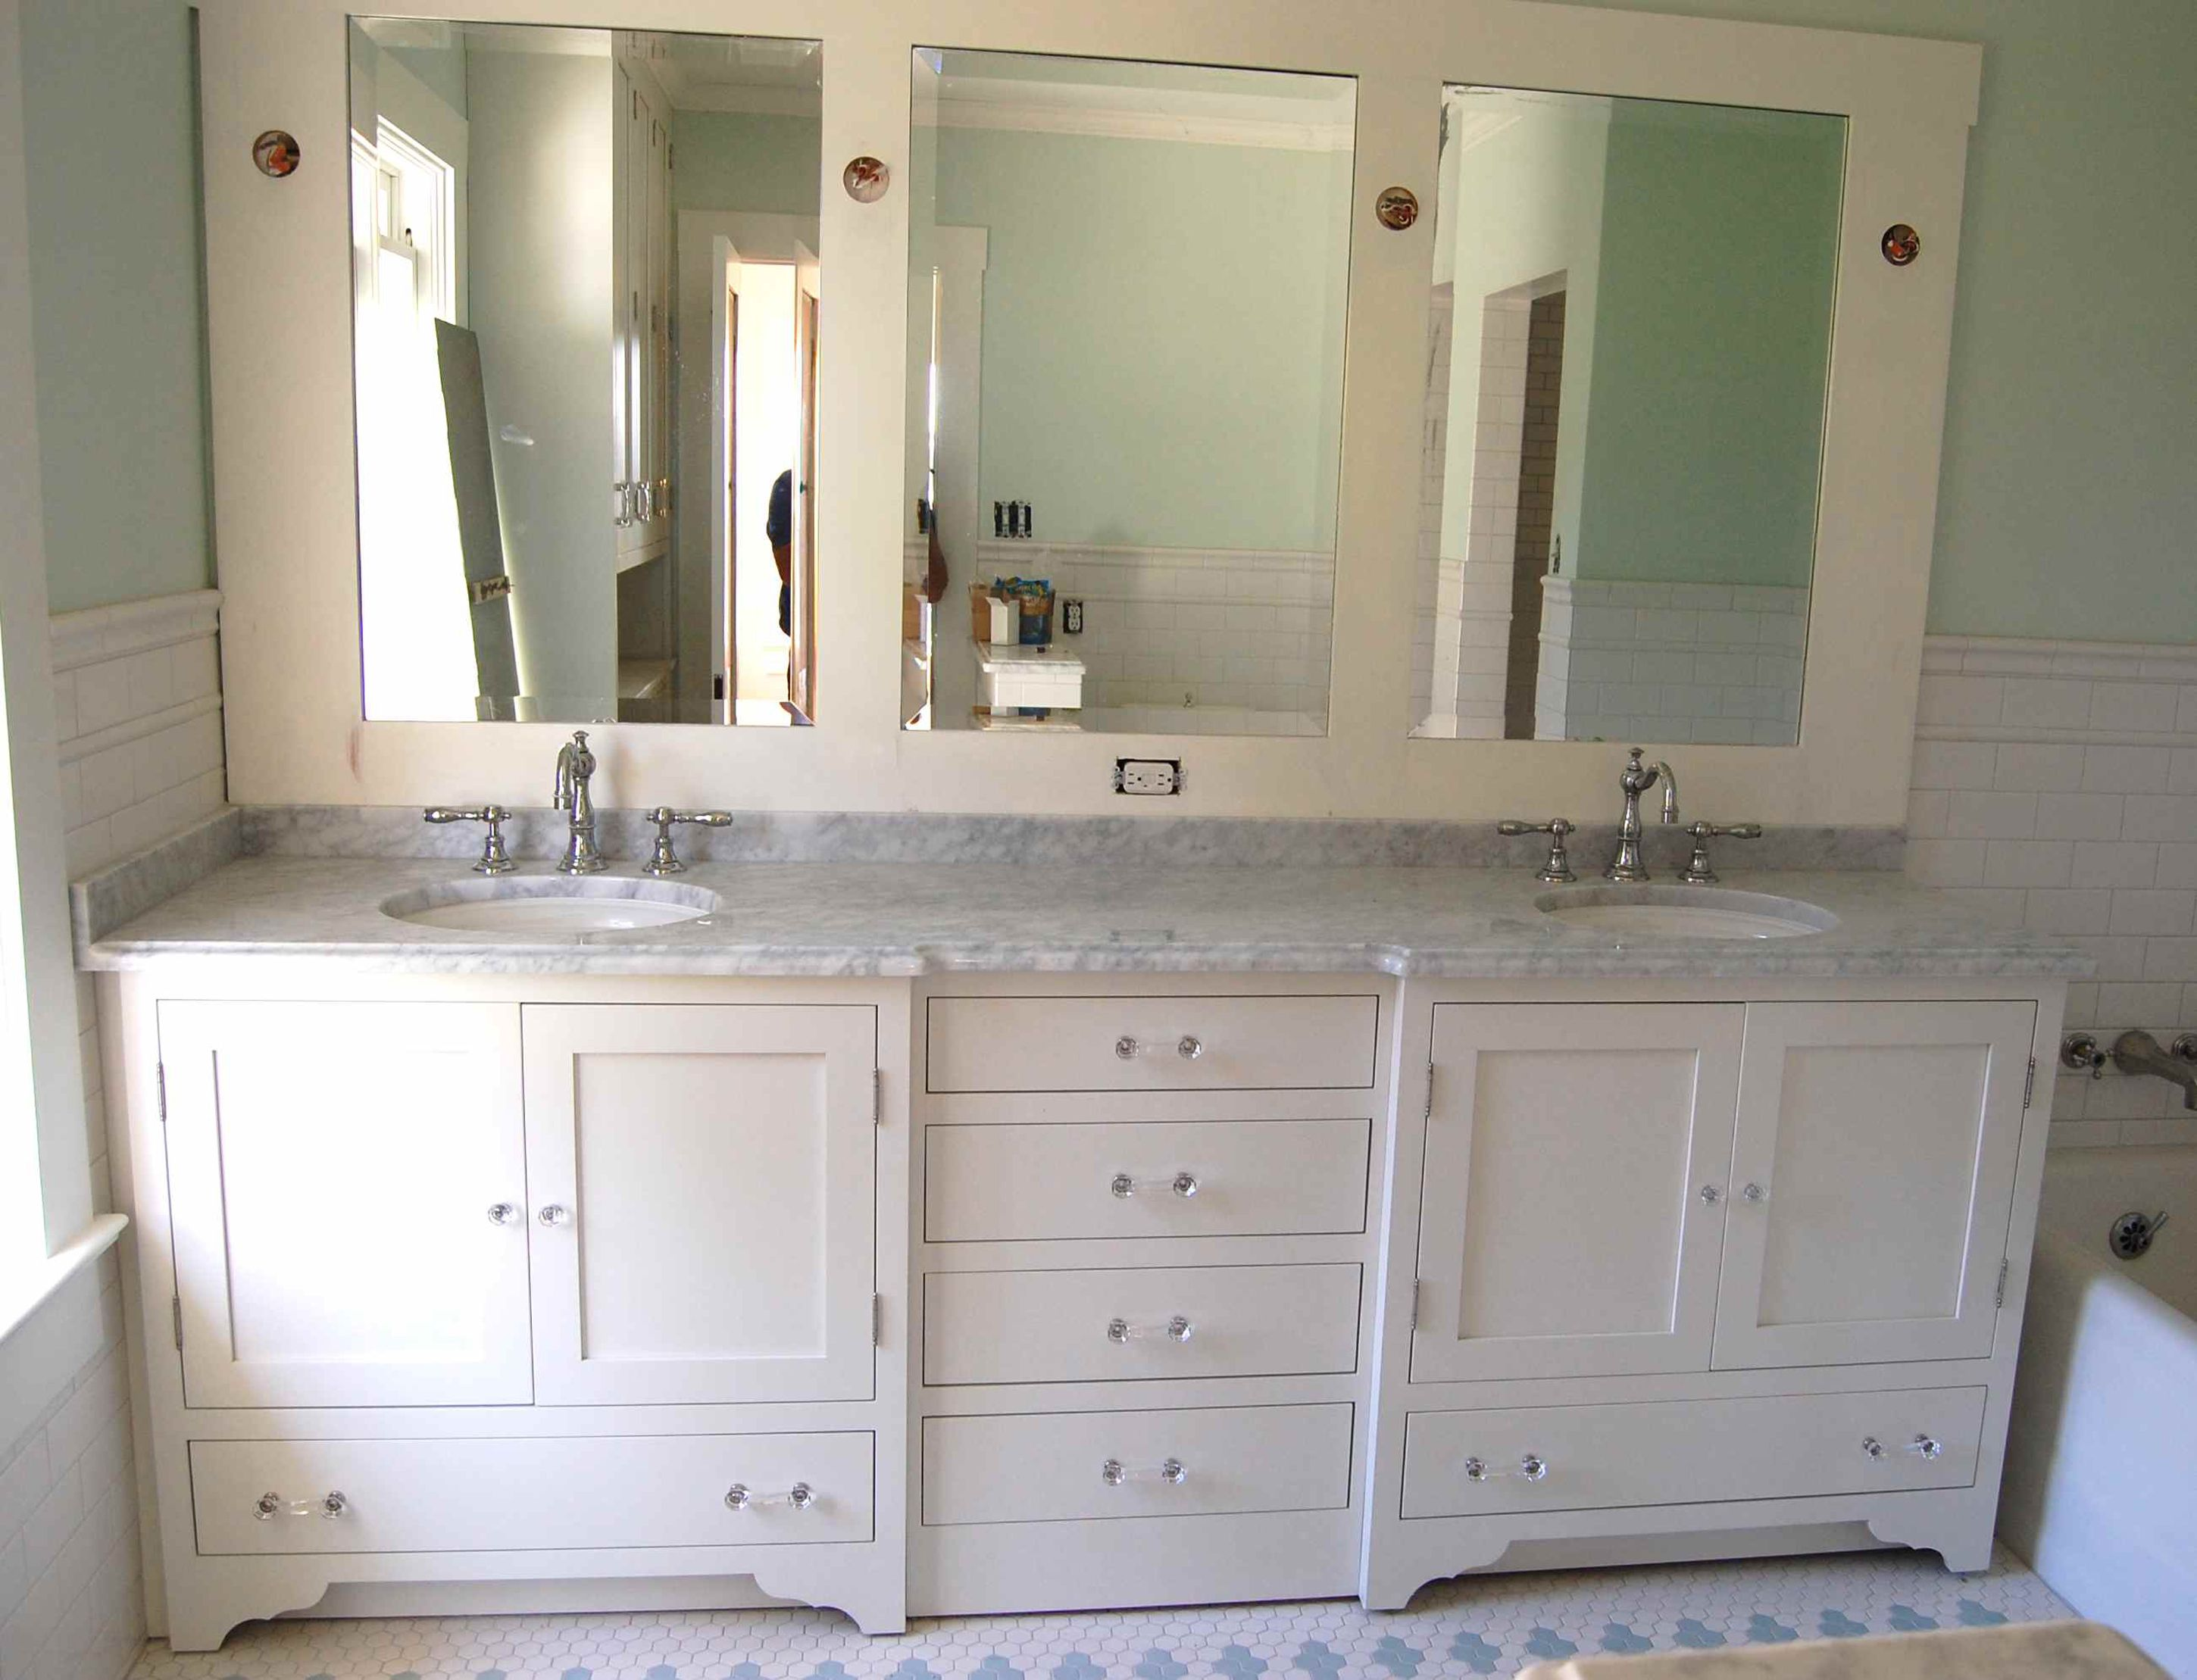 Bathroom Vanities Design Ideas New Lovable White Bathroom Vanity Cabinet Design Idea With Gray Review